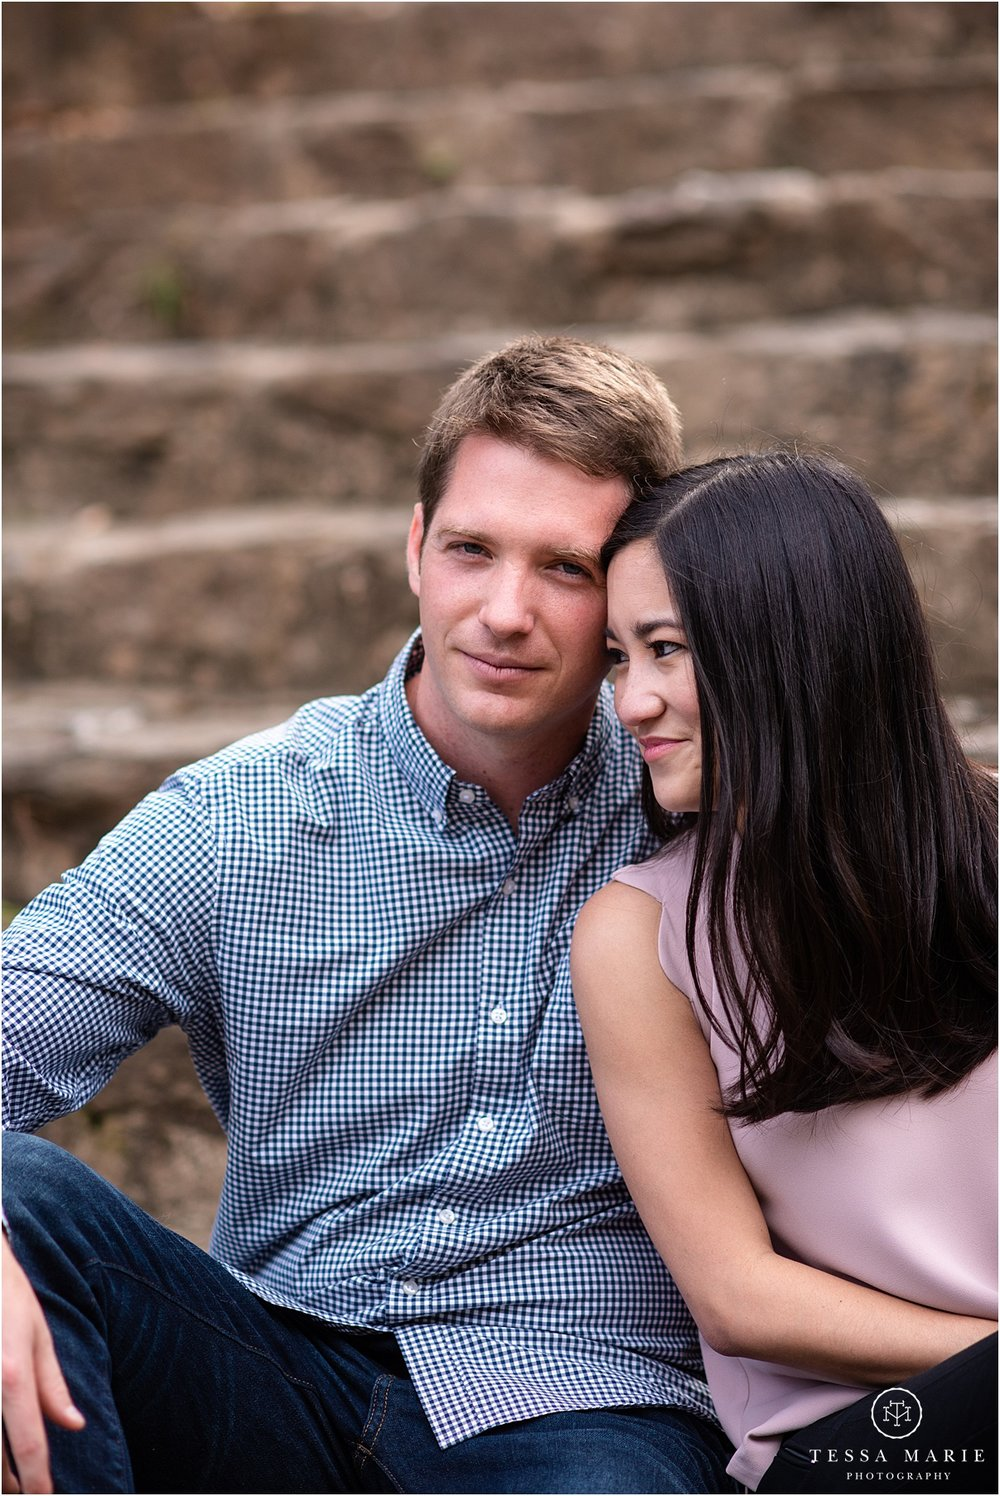 Tessa_marie_photography_wedding_photographer_engagement_pictures_piedmont_park_0084.jpg